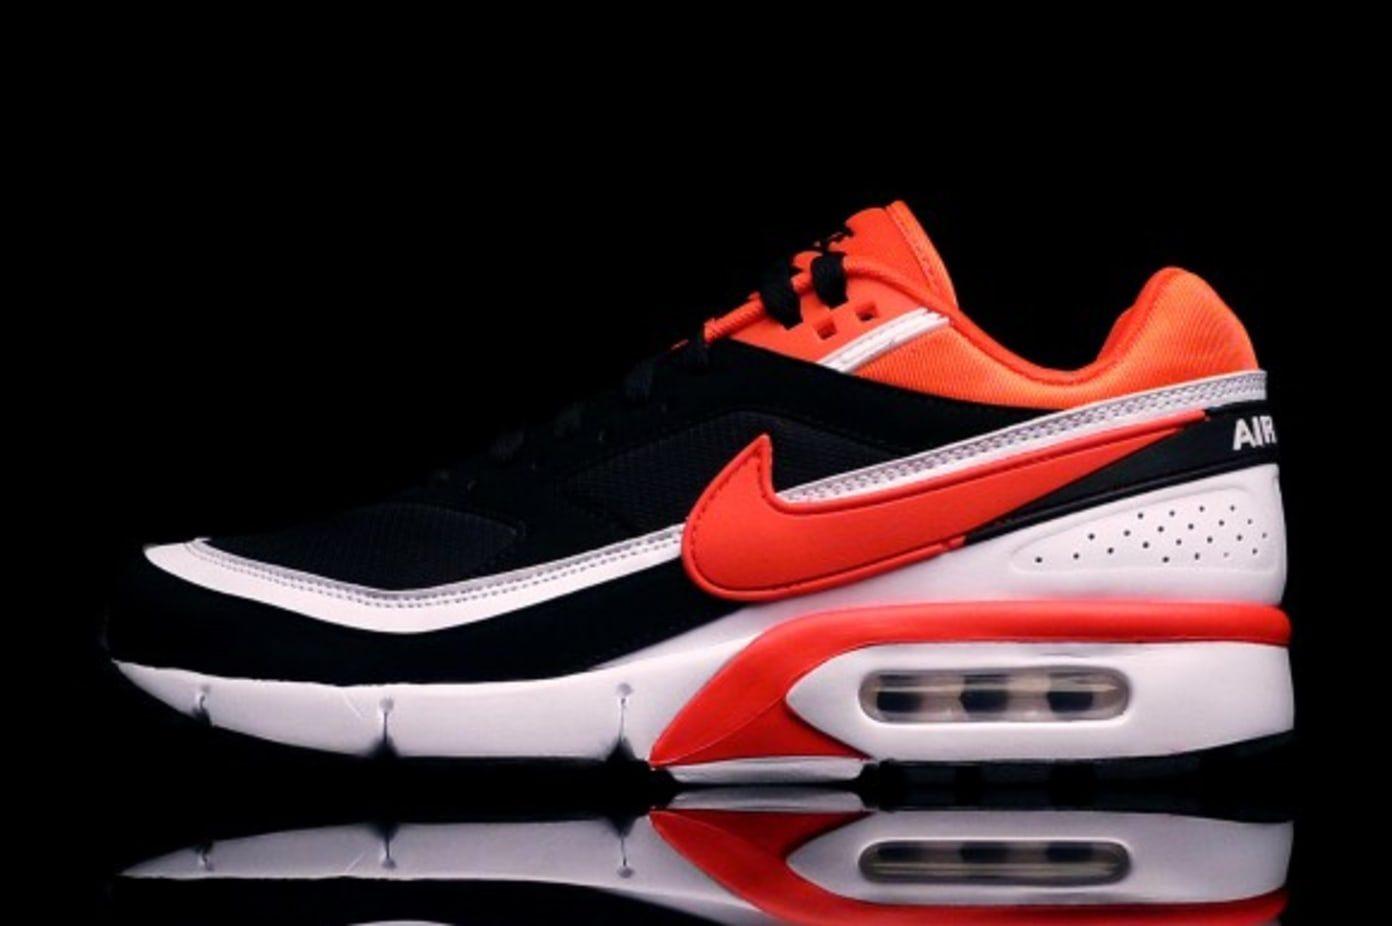 The Nike Air Classic BW Gen II CMFT Light Crimson